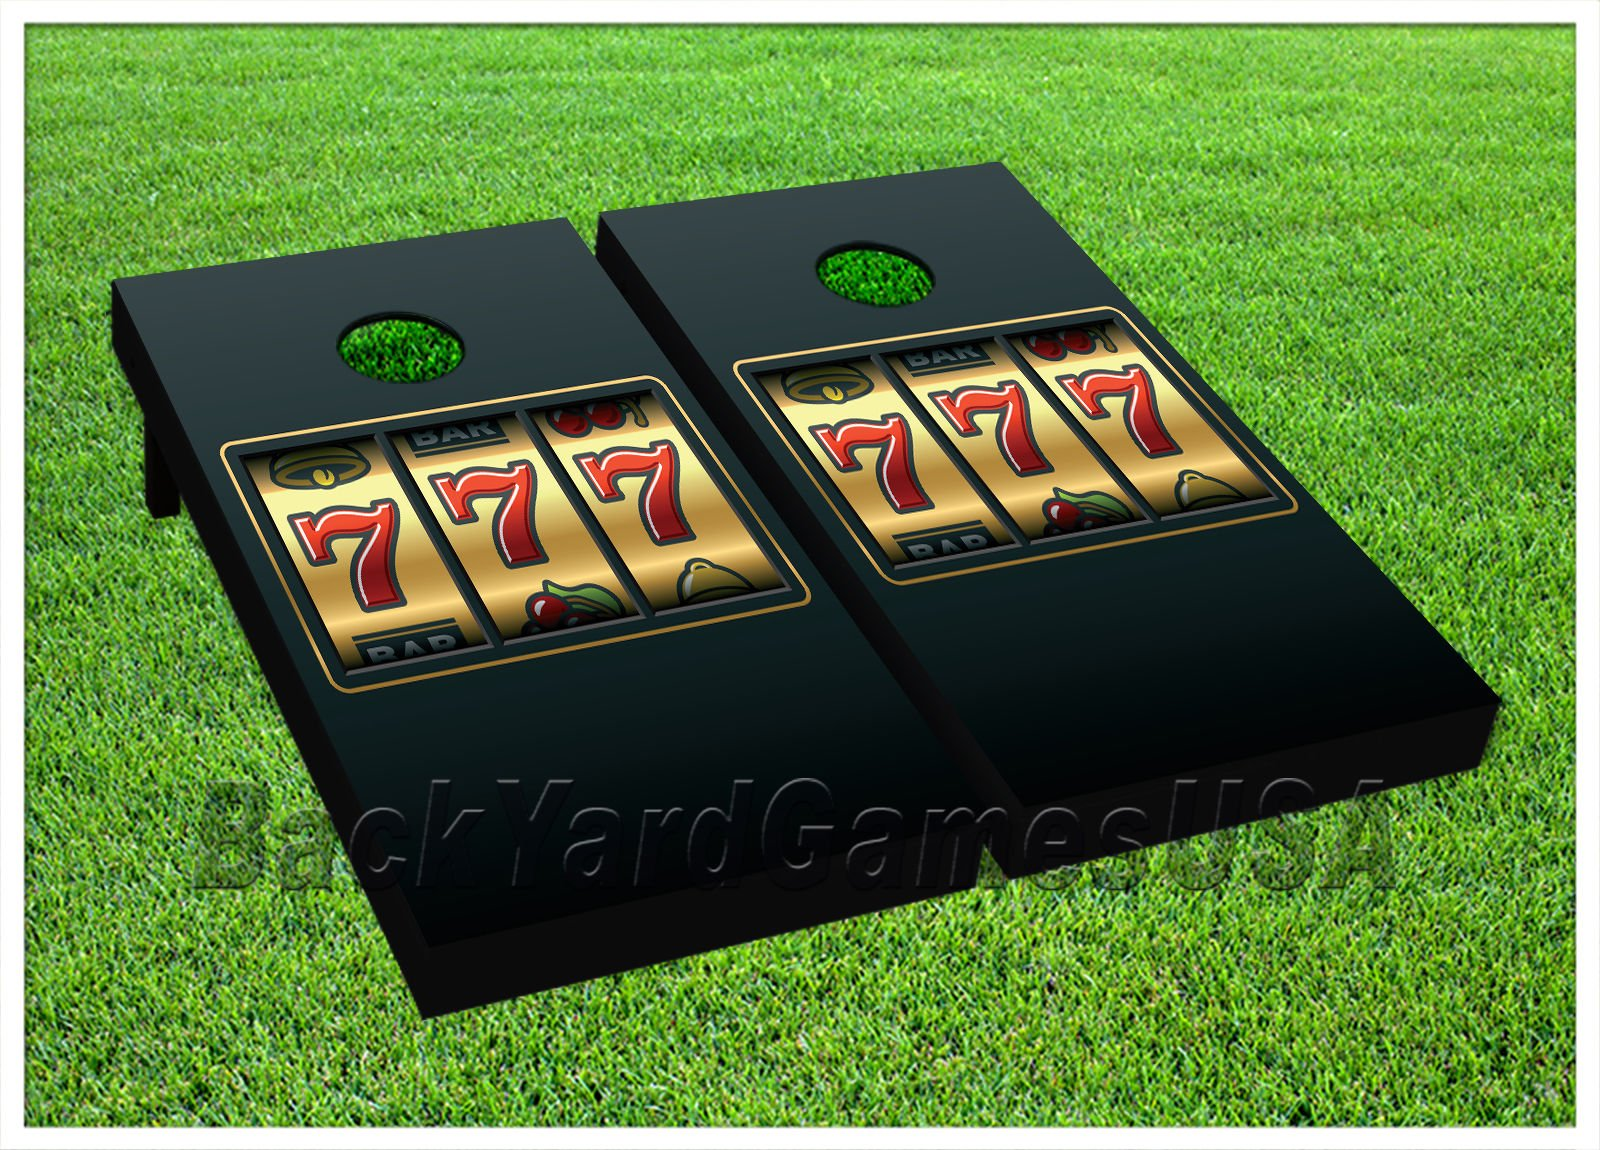 CORNHOLE BEANBAG TOSS GAME Lucky 7's Casino Slot Game w Bags Game Board Set 538 by BackYardGamesUSA